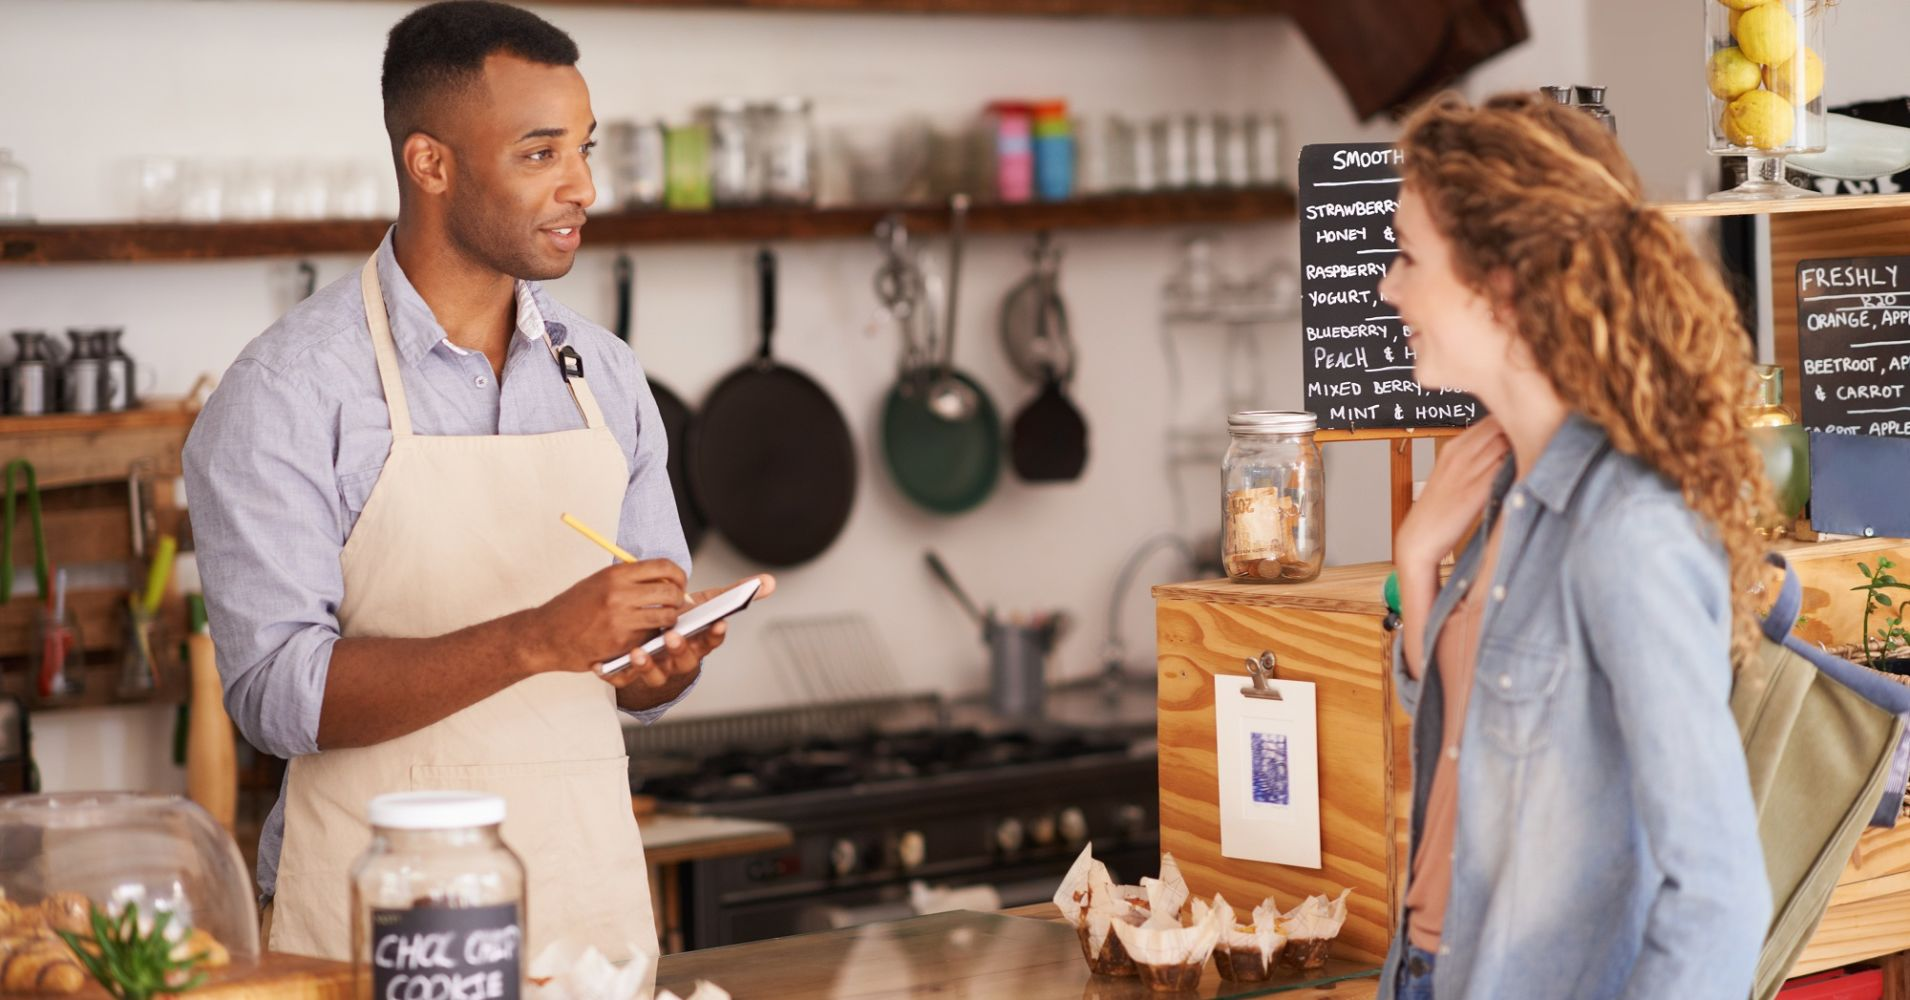 4 Ways To Fund Your Small Business - Faculty of Law